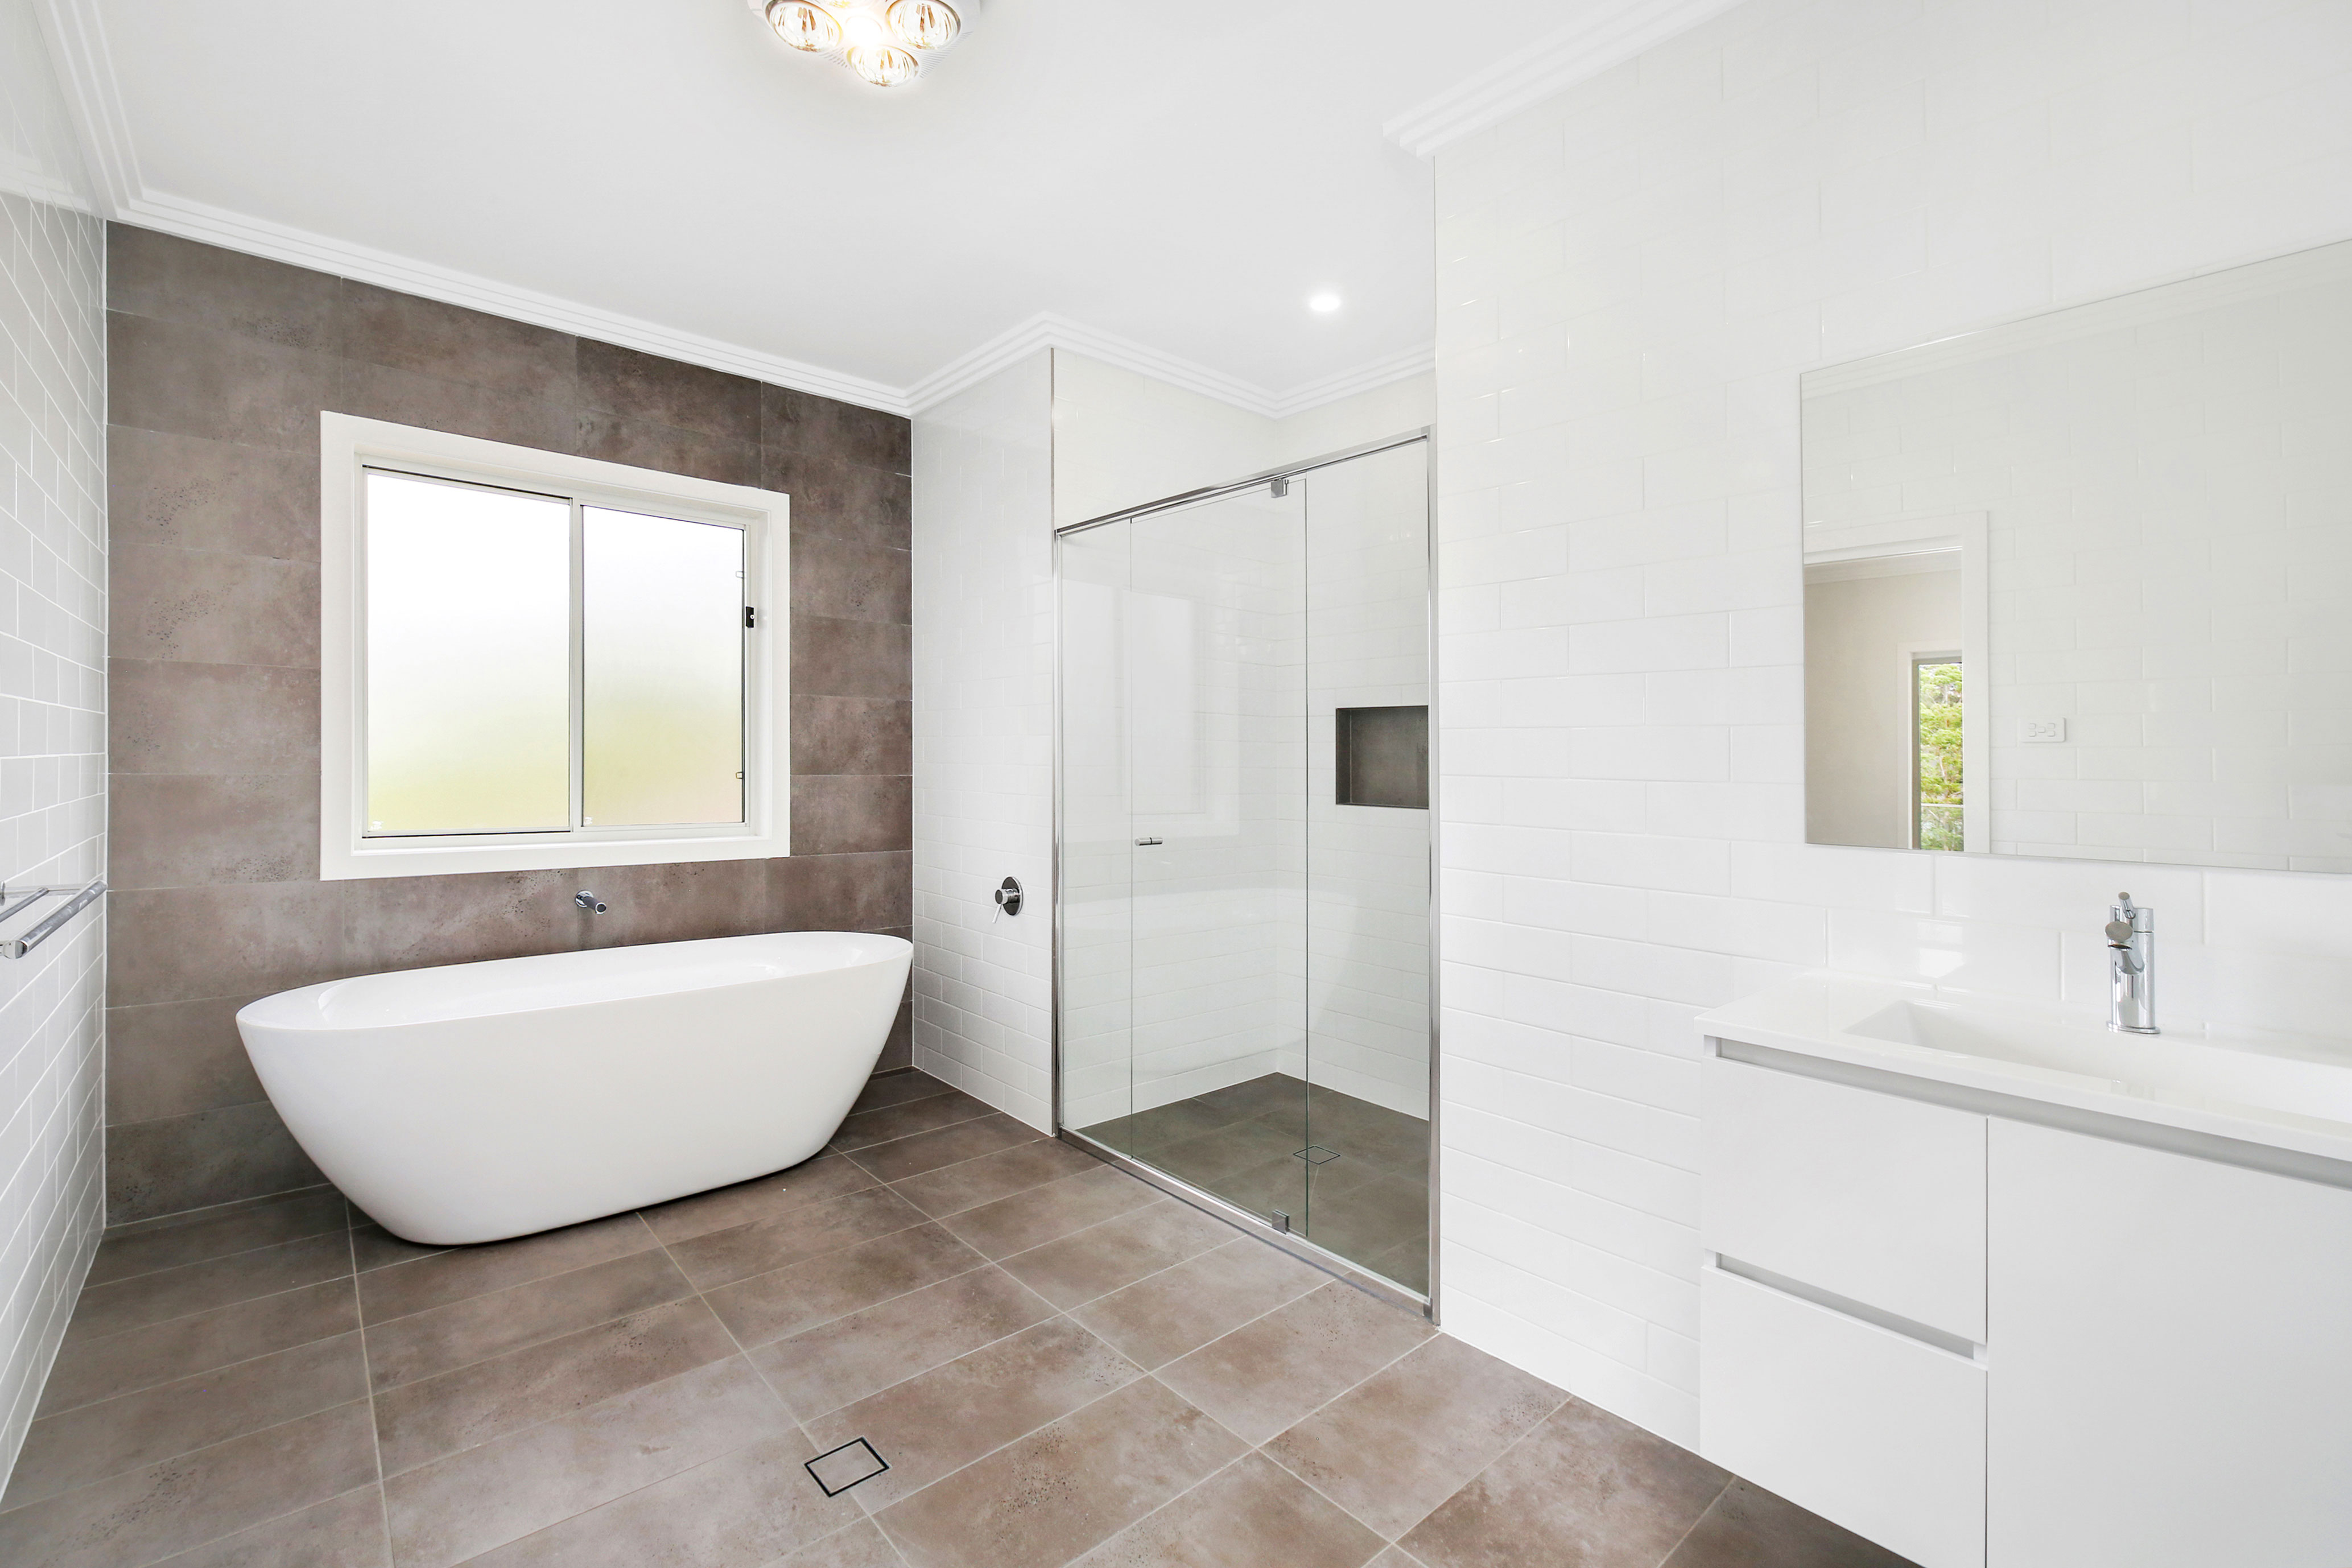 Spacious Ensuite with porcelain floor to ceiling wall tiles